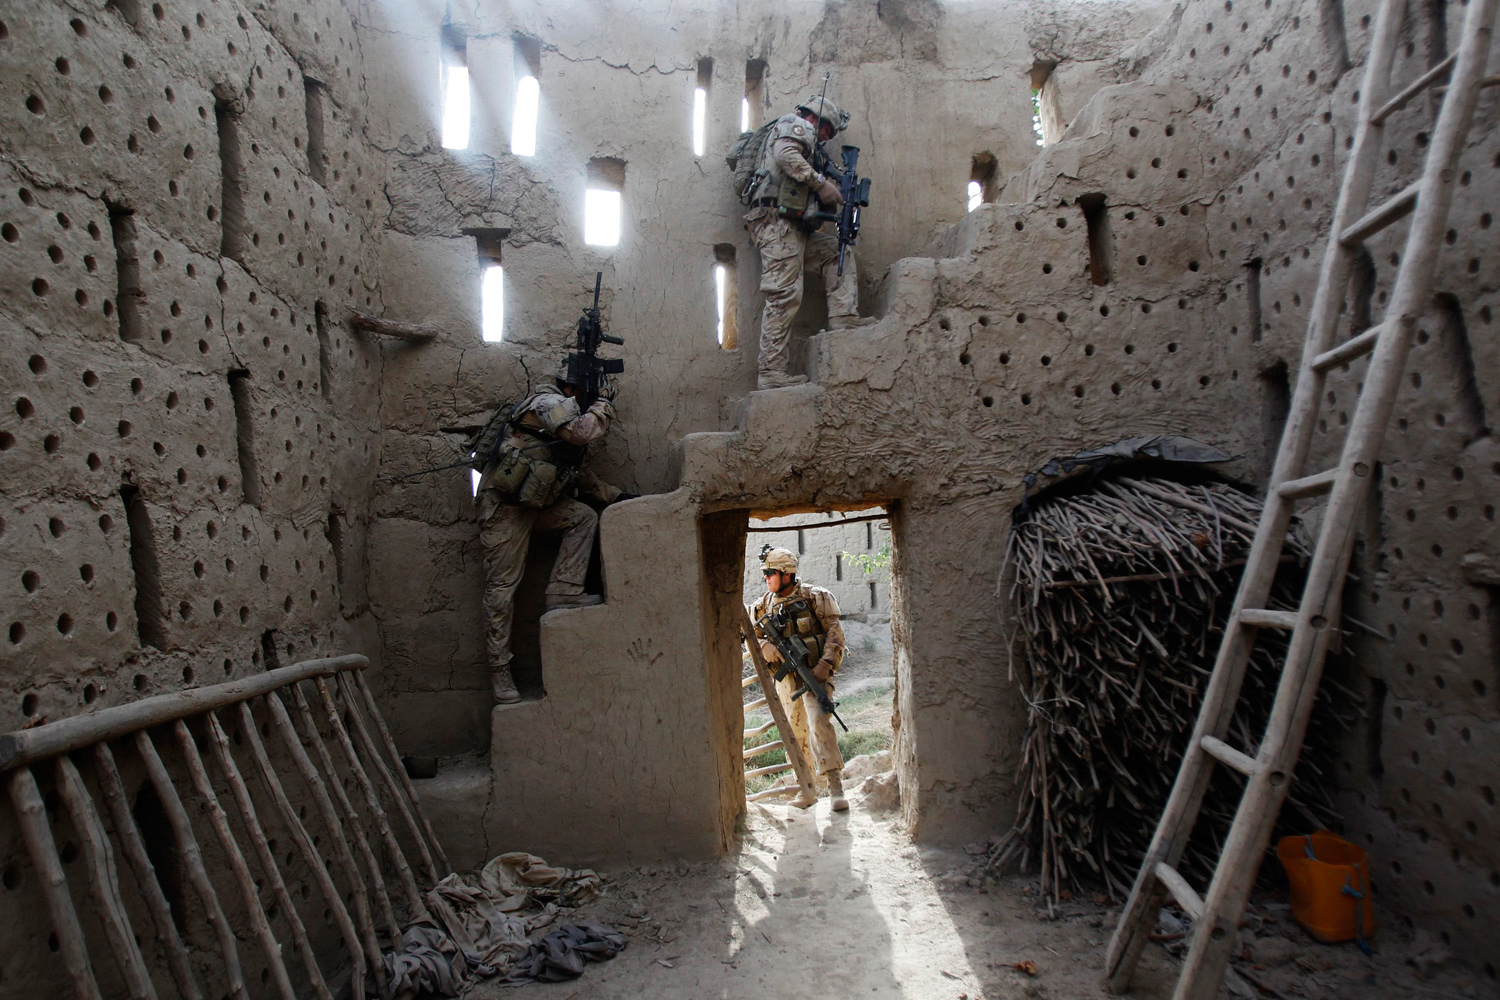 June 13, 2011. Canadian soldiers search inside a barn during a patrol in the Panjwai district of Kandahar, Afghanistan.